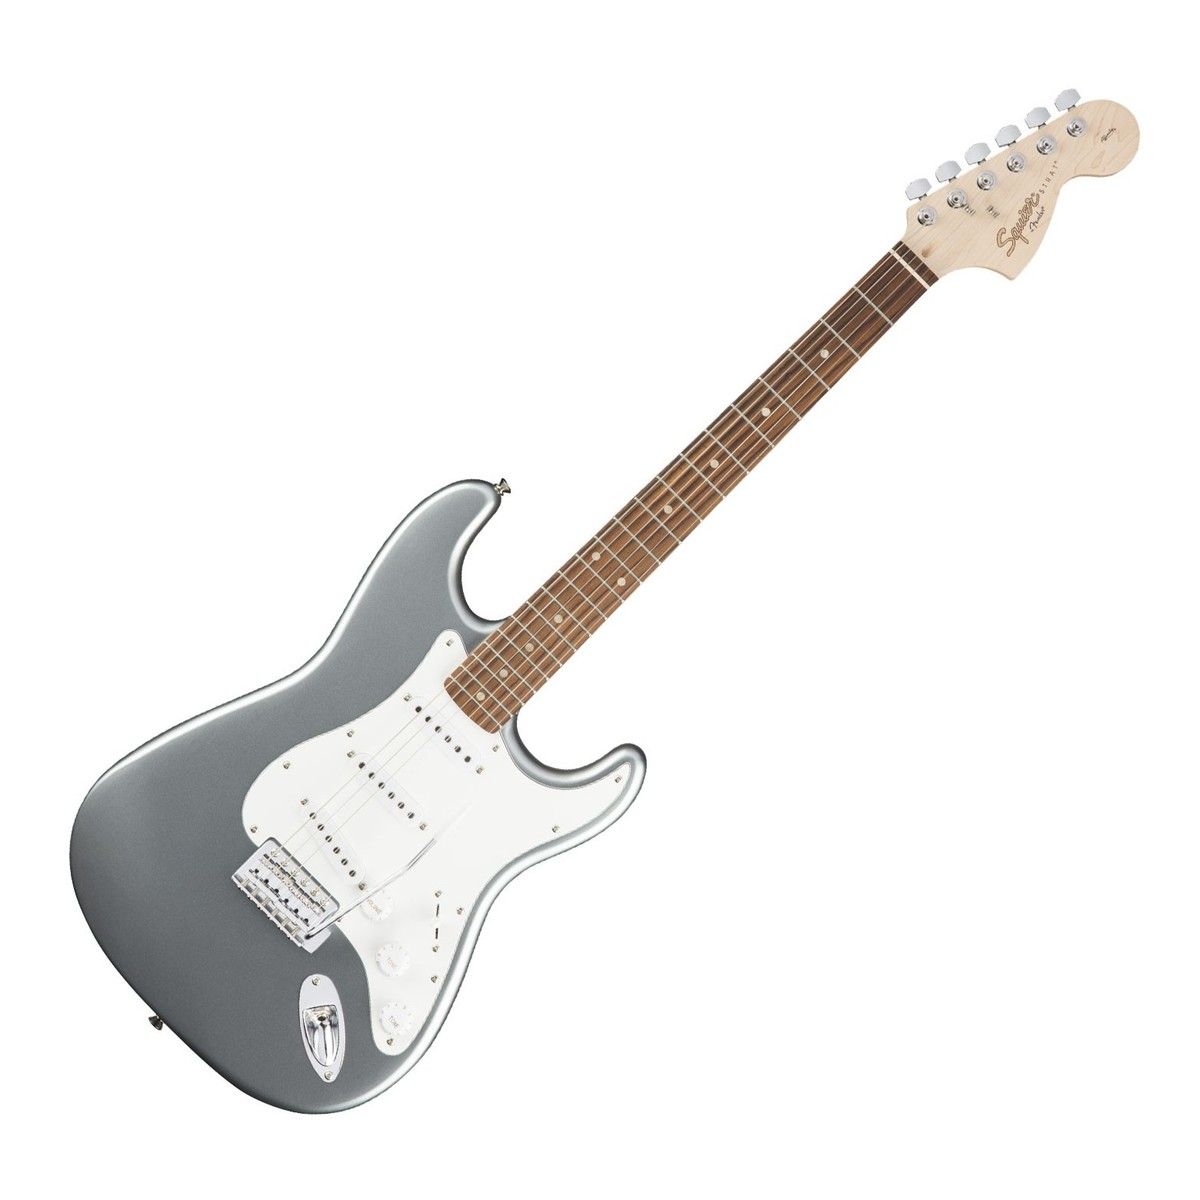 squier affinity stratocaster slick silver at gear4music. Black Bedroom Furniture Sets. Home Design Ideas